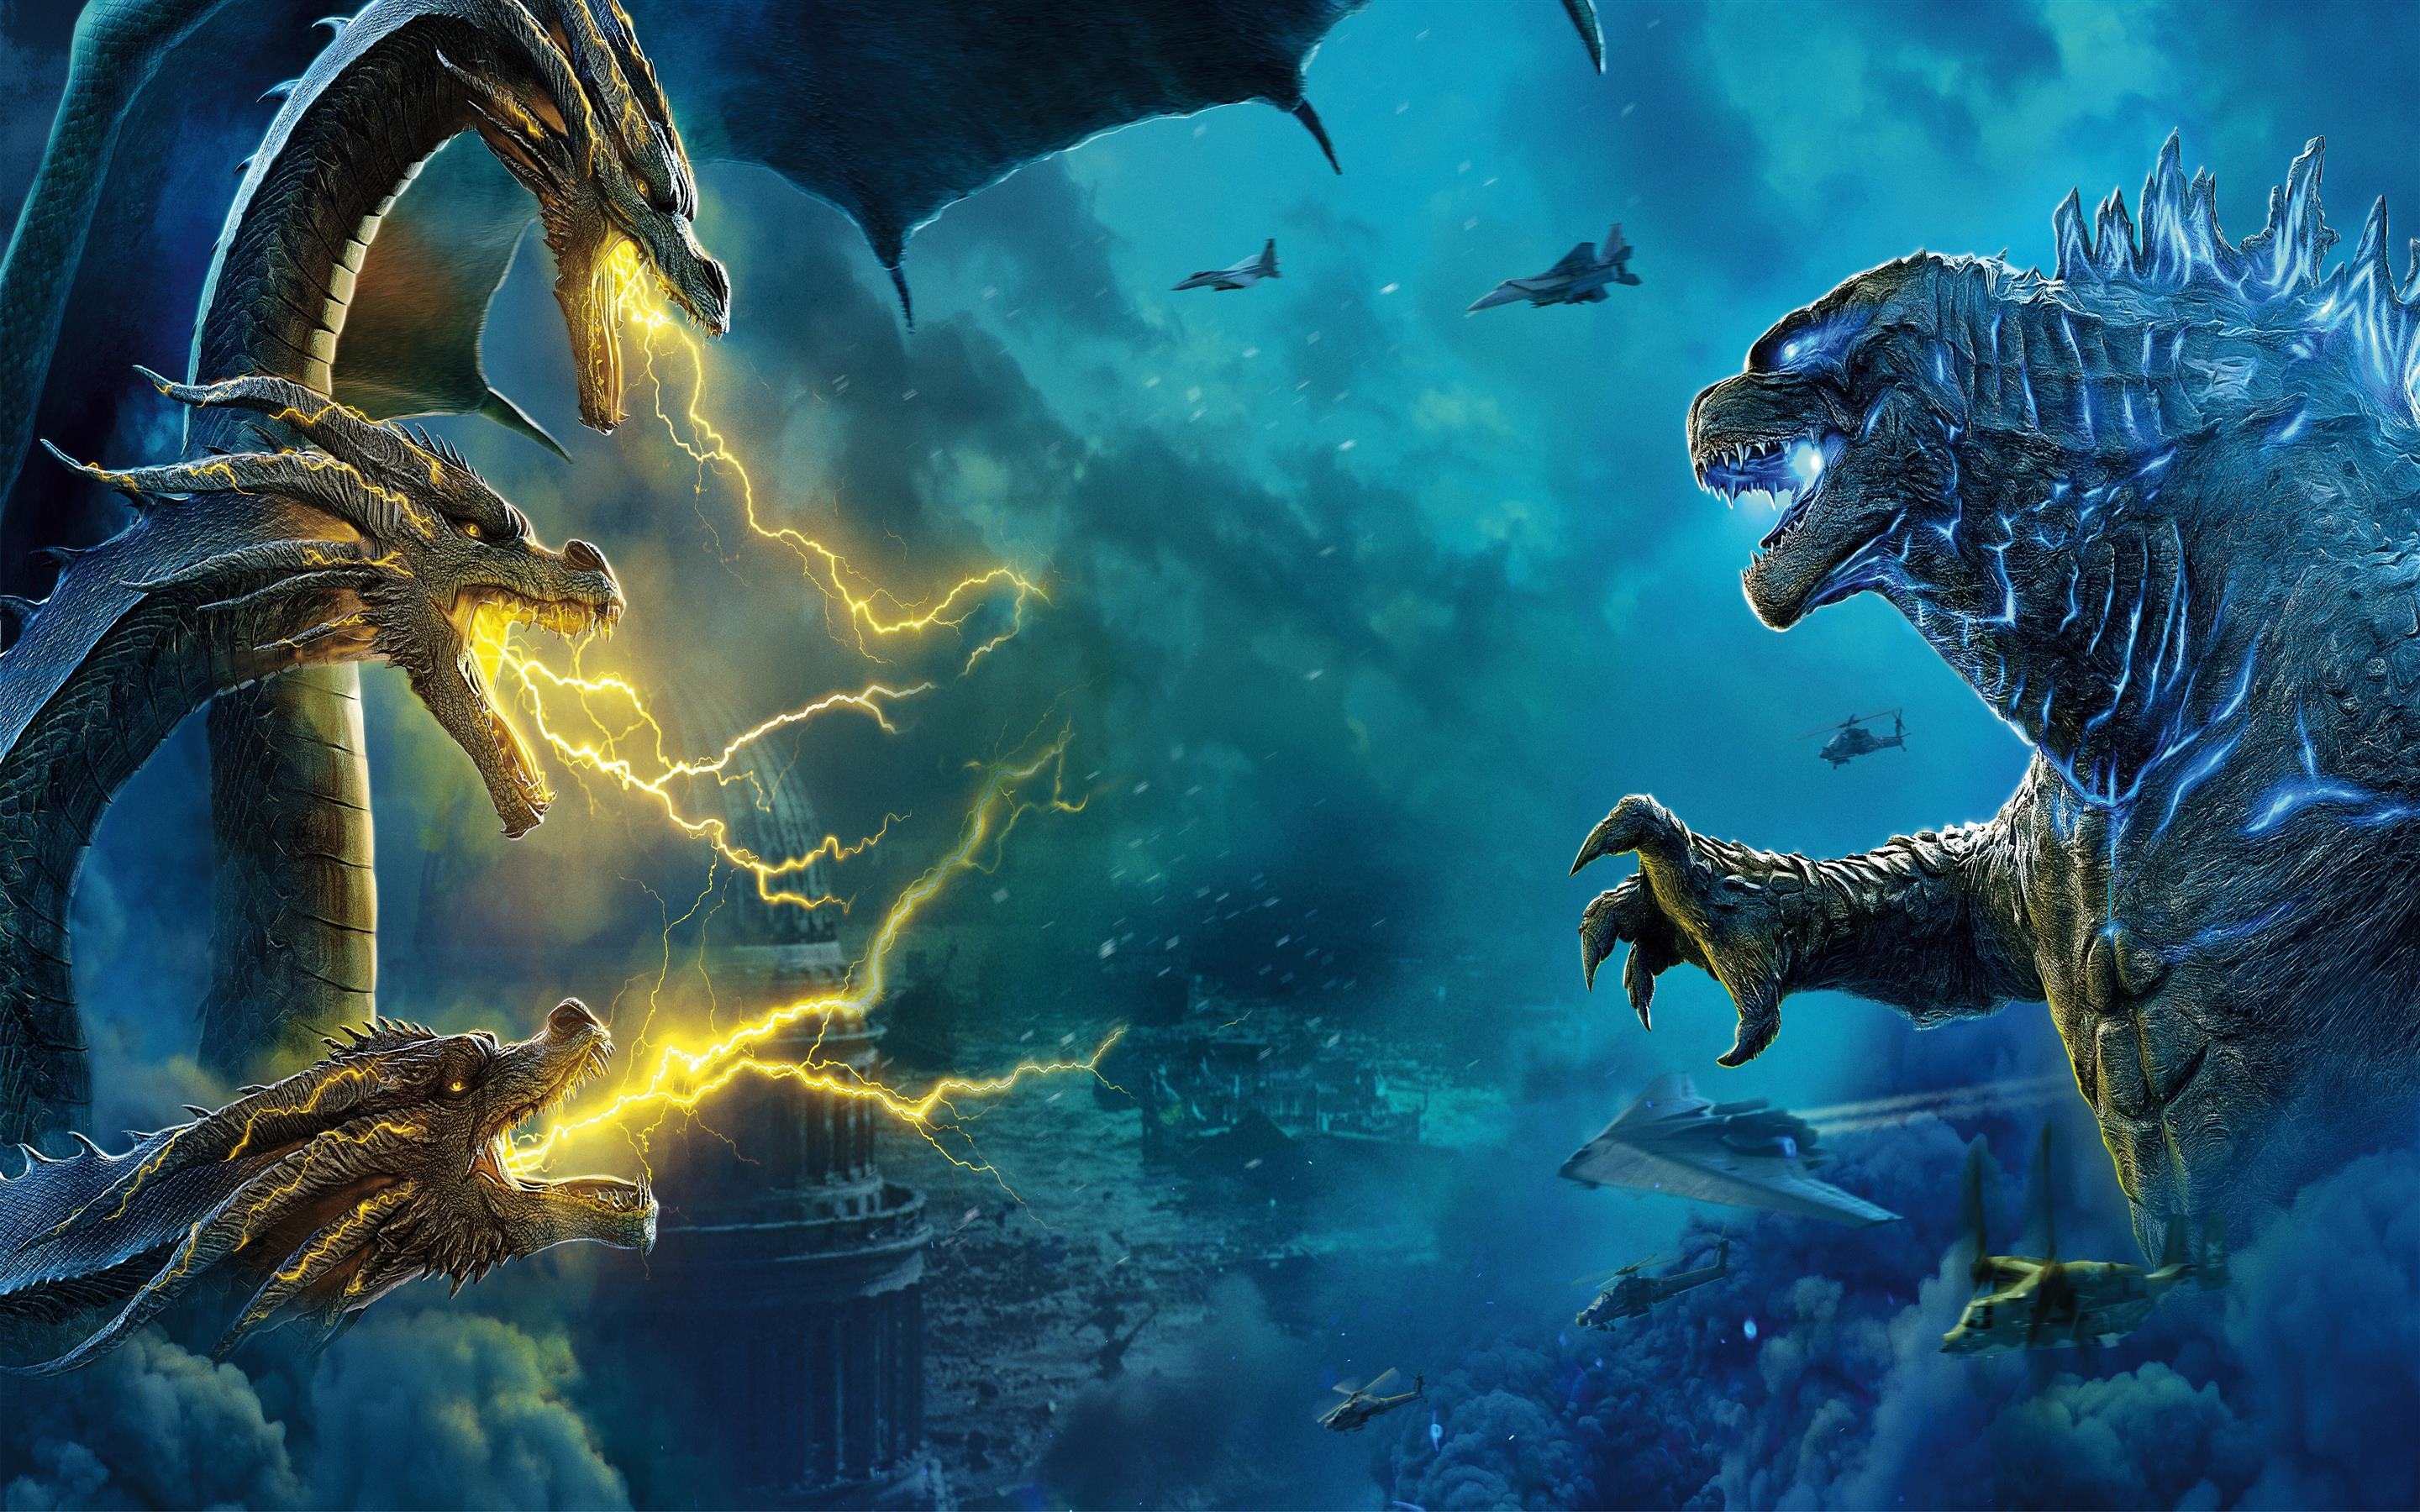 2880x1800 2019 Movie Wallpaper of Godzilla King of the Monsters